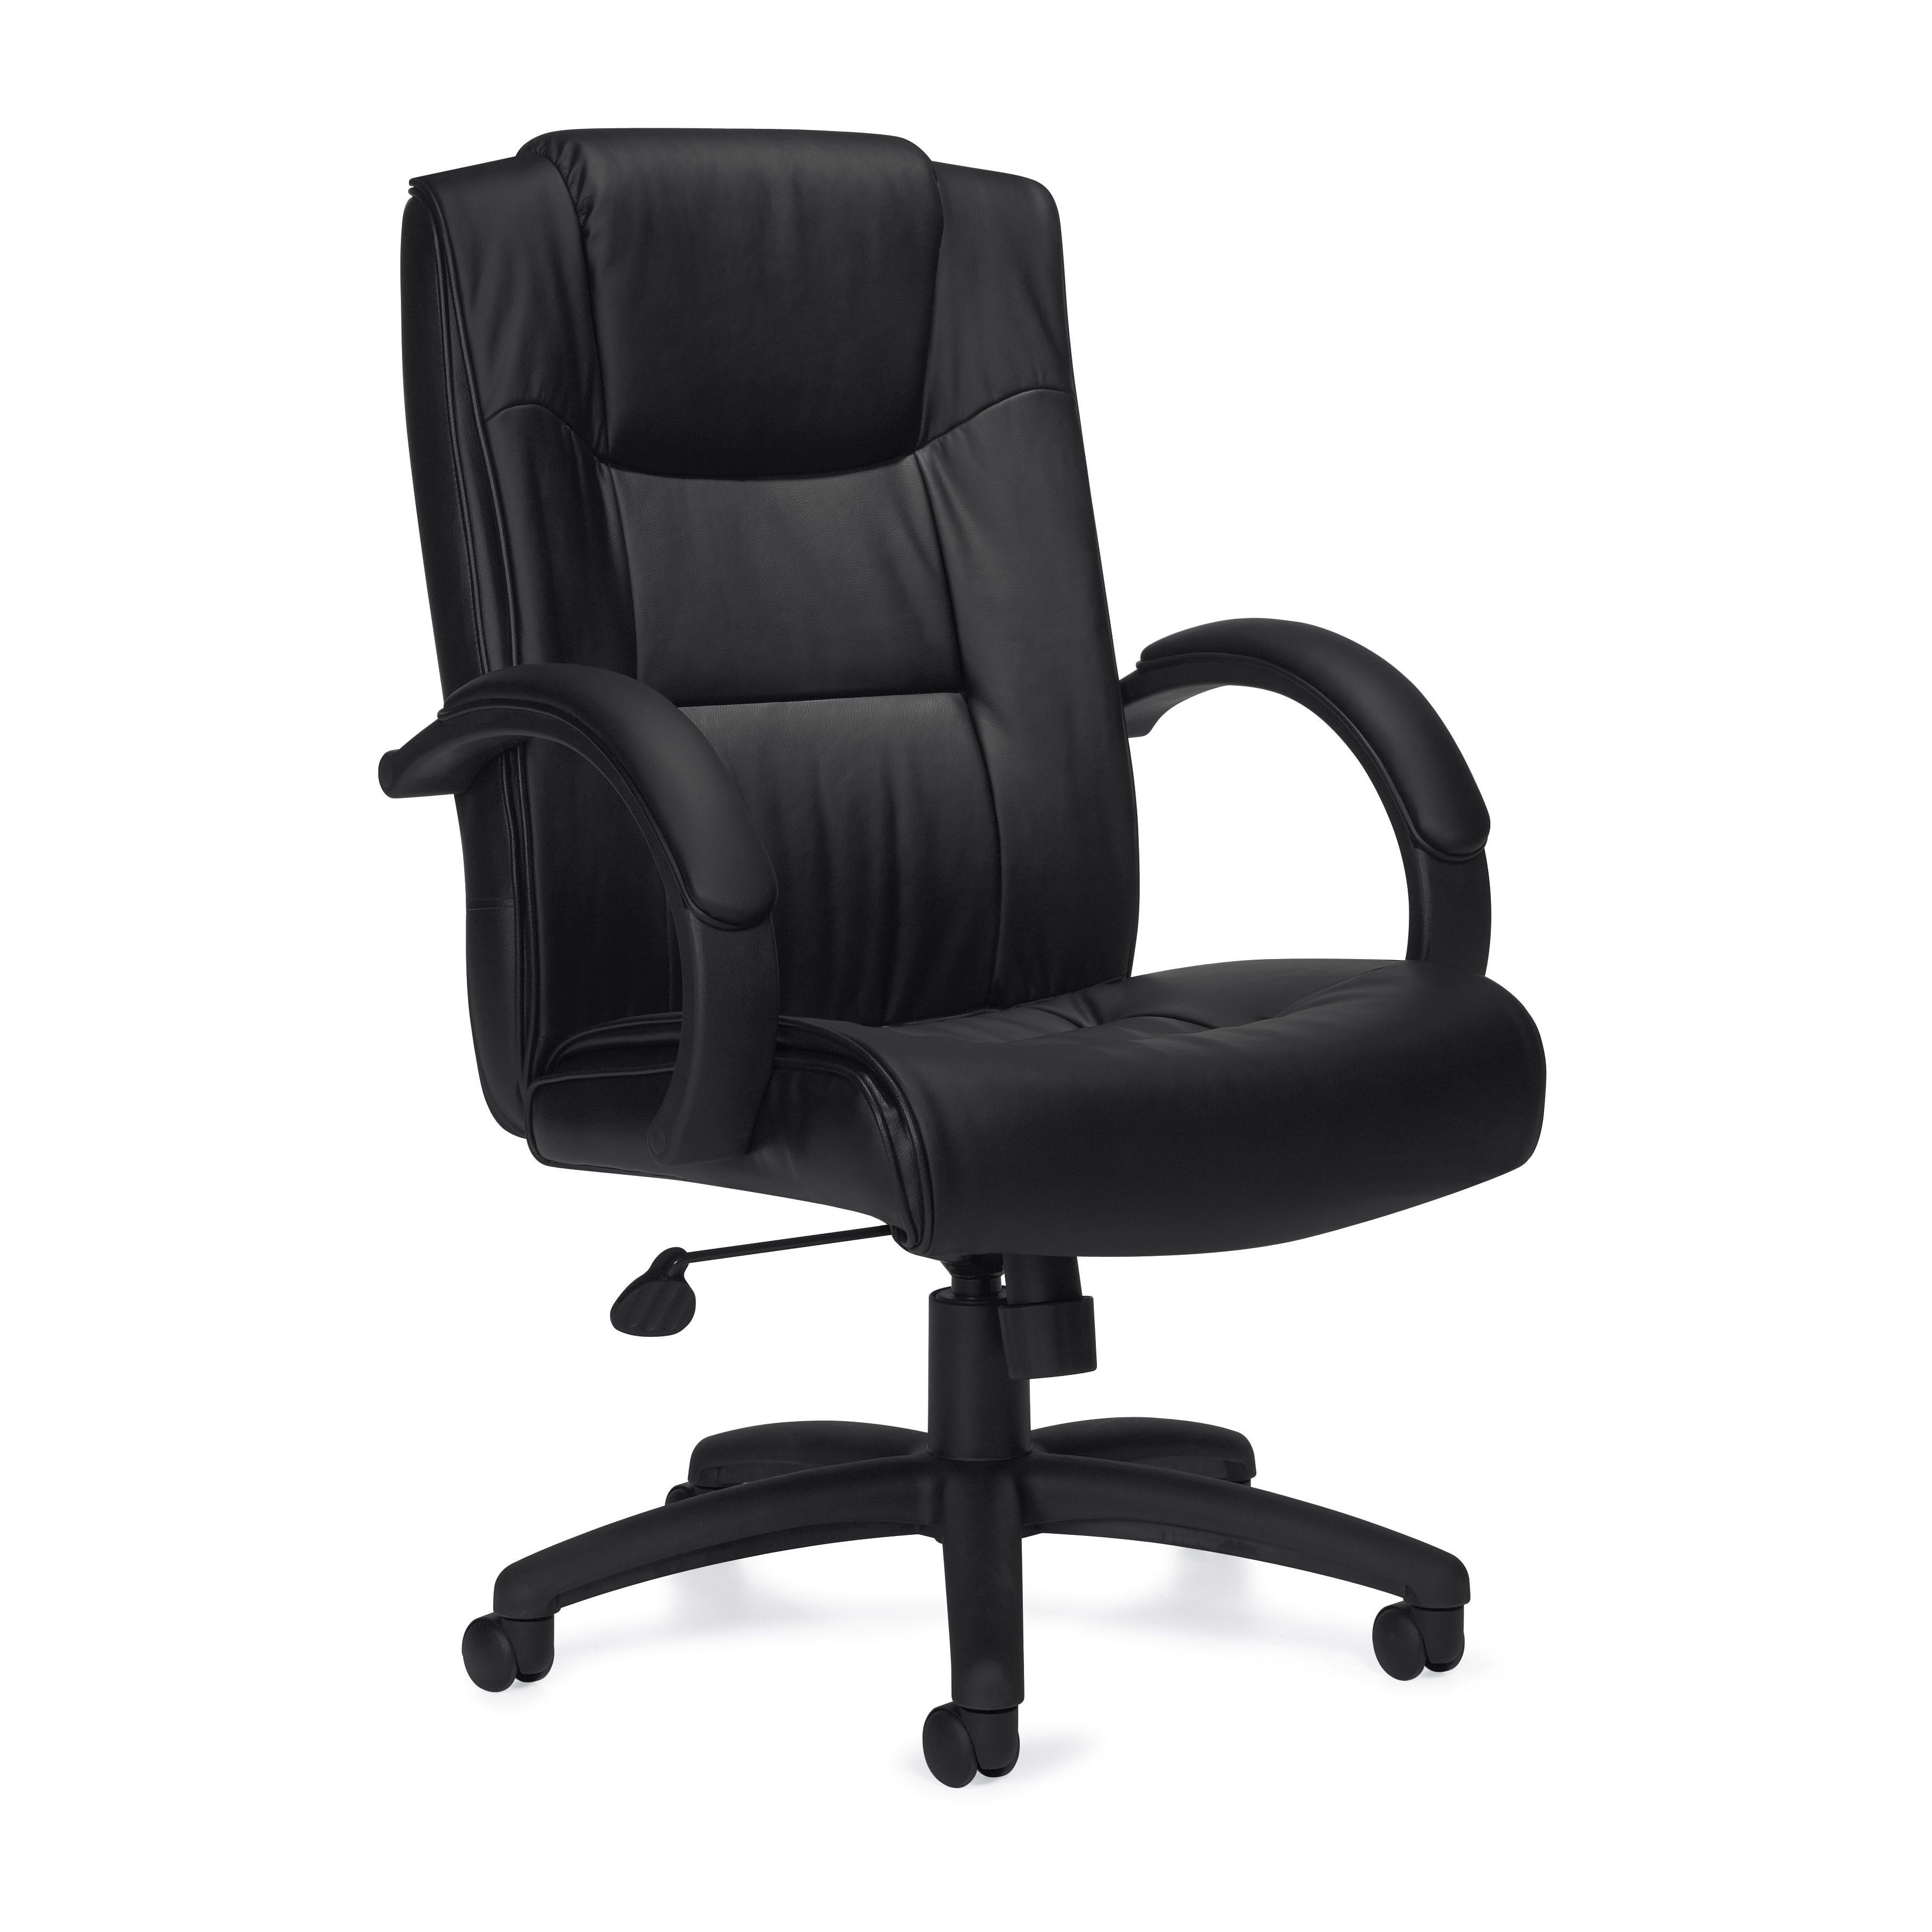 Office chairs are a part of the décor of any office and so